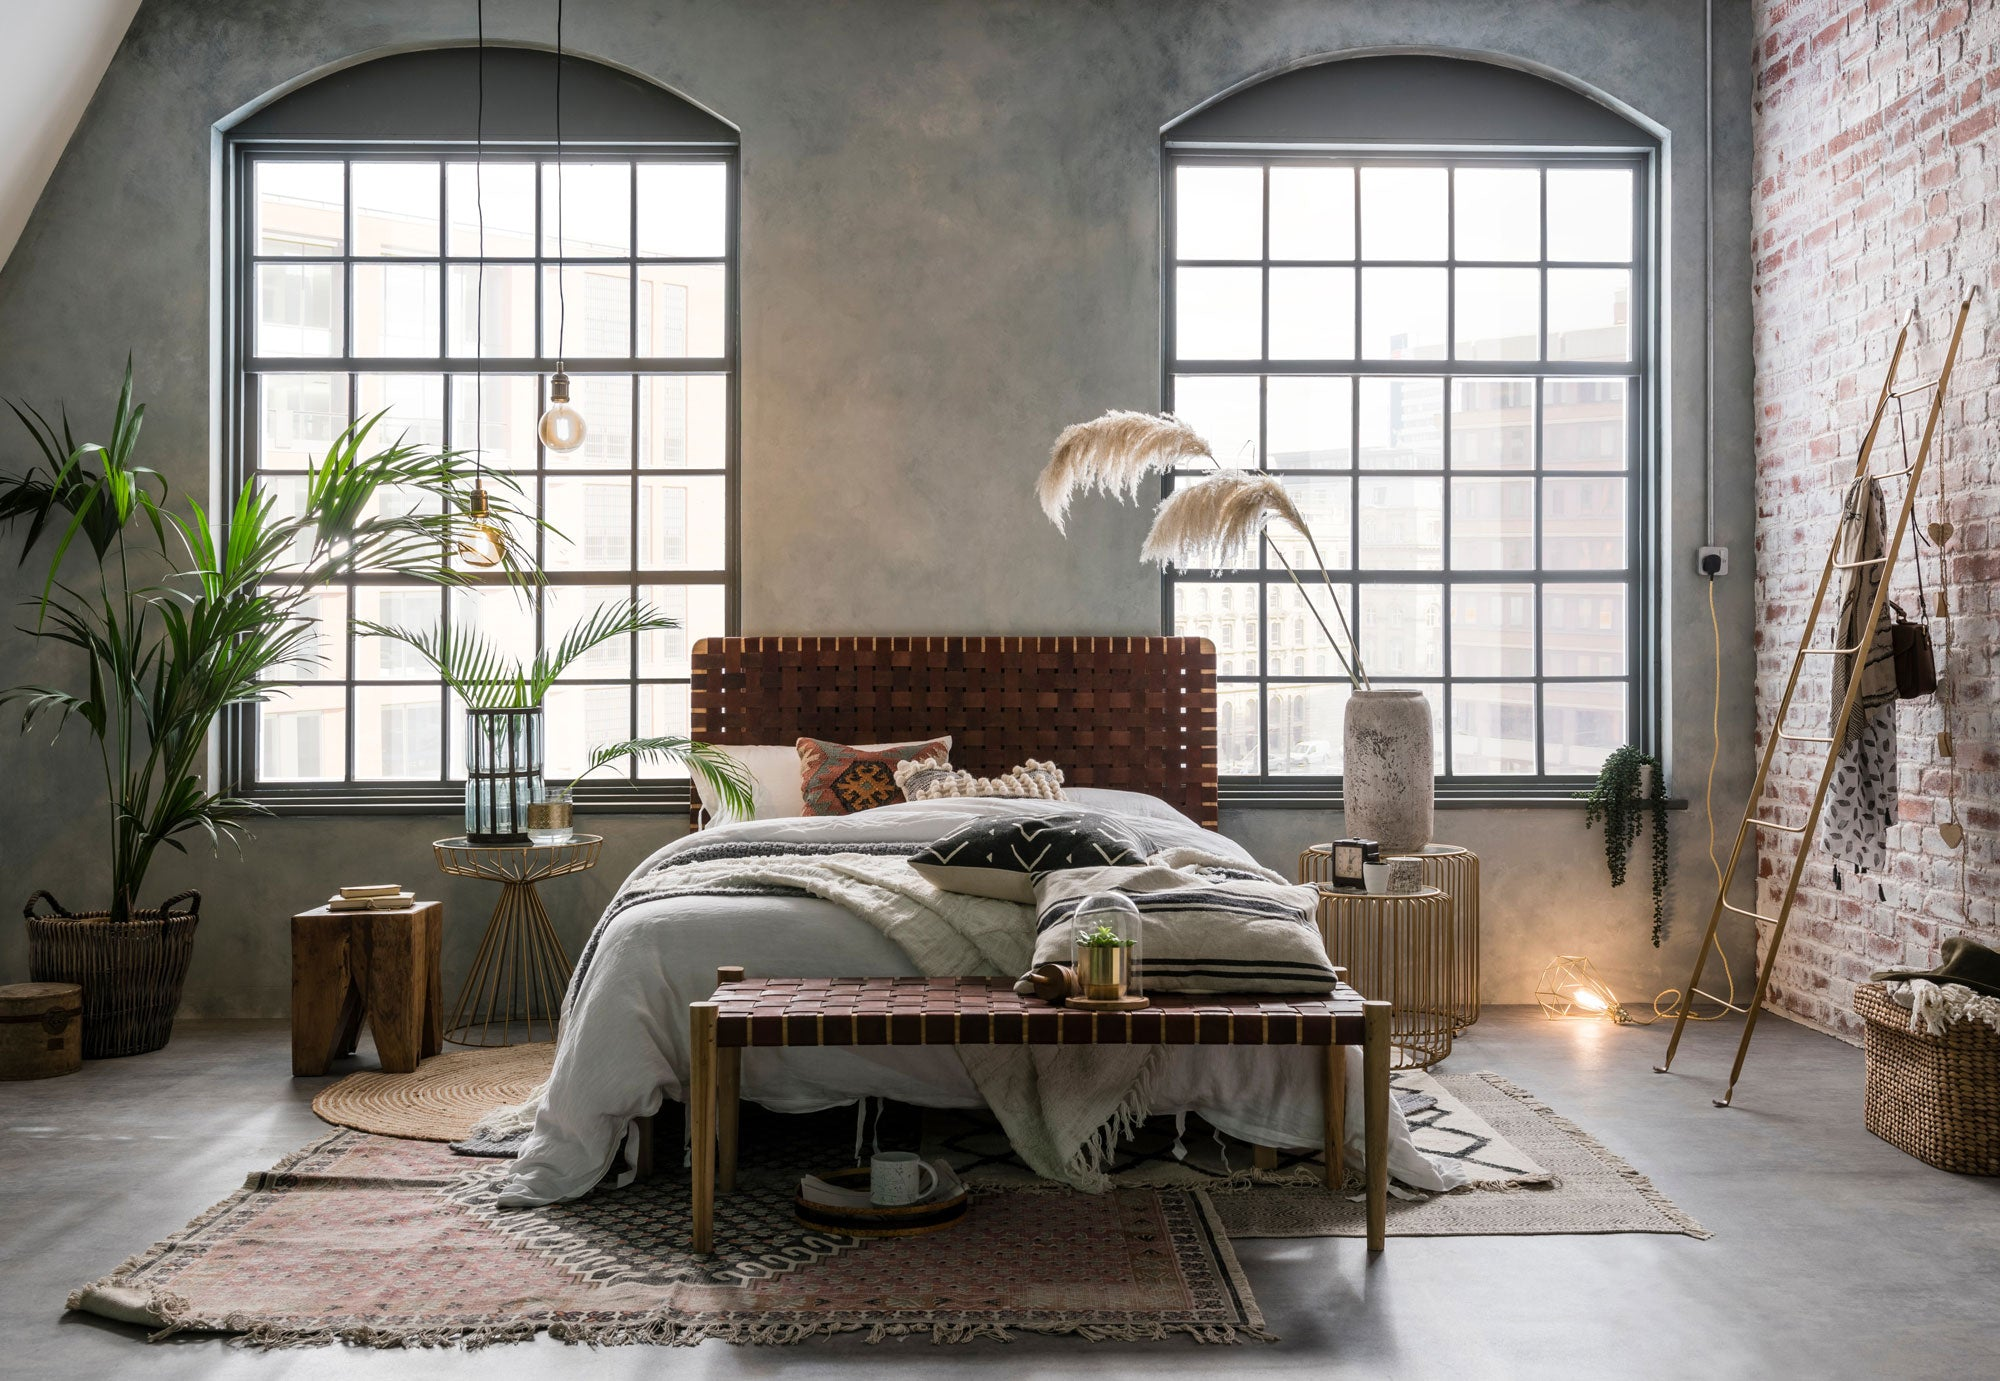 Industrial style bedroom featuring woven leather furniture and metallic furniture pieces from Cuckooland